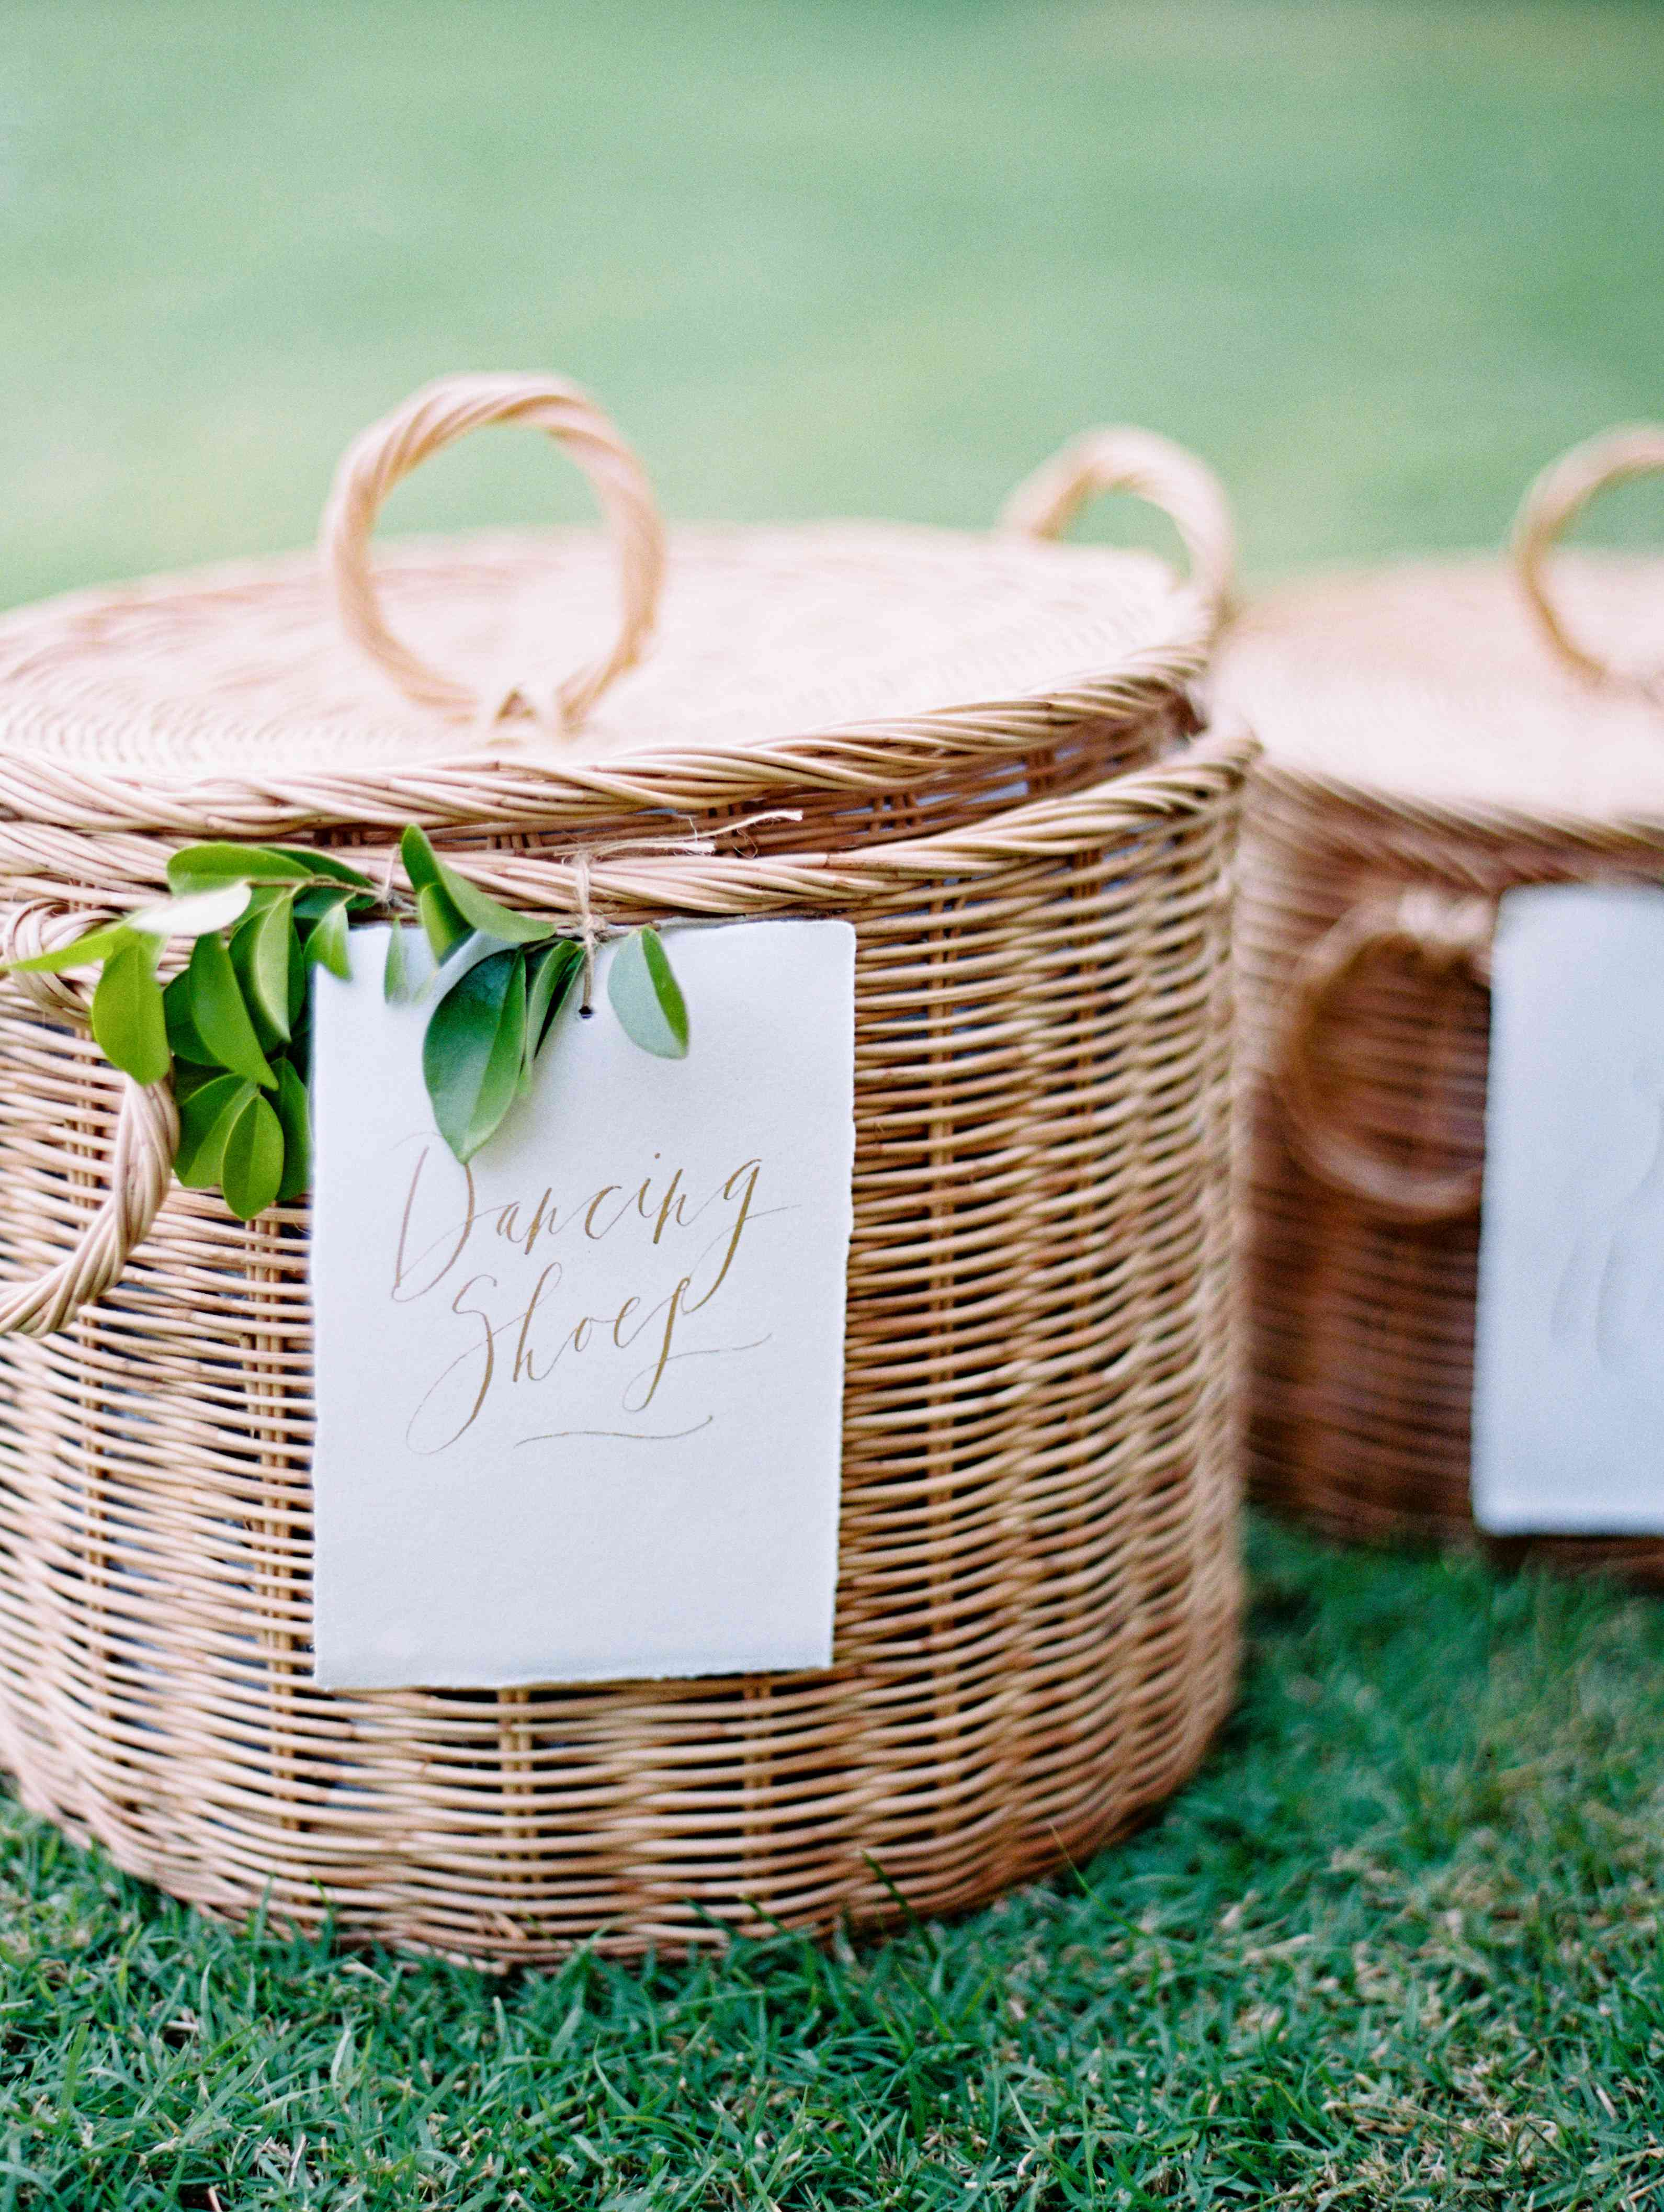 Wicker baskets decorated with greenery with a sign that says